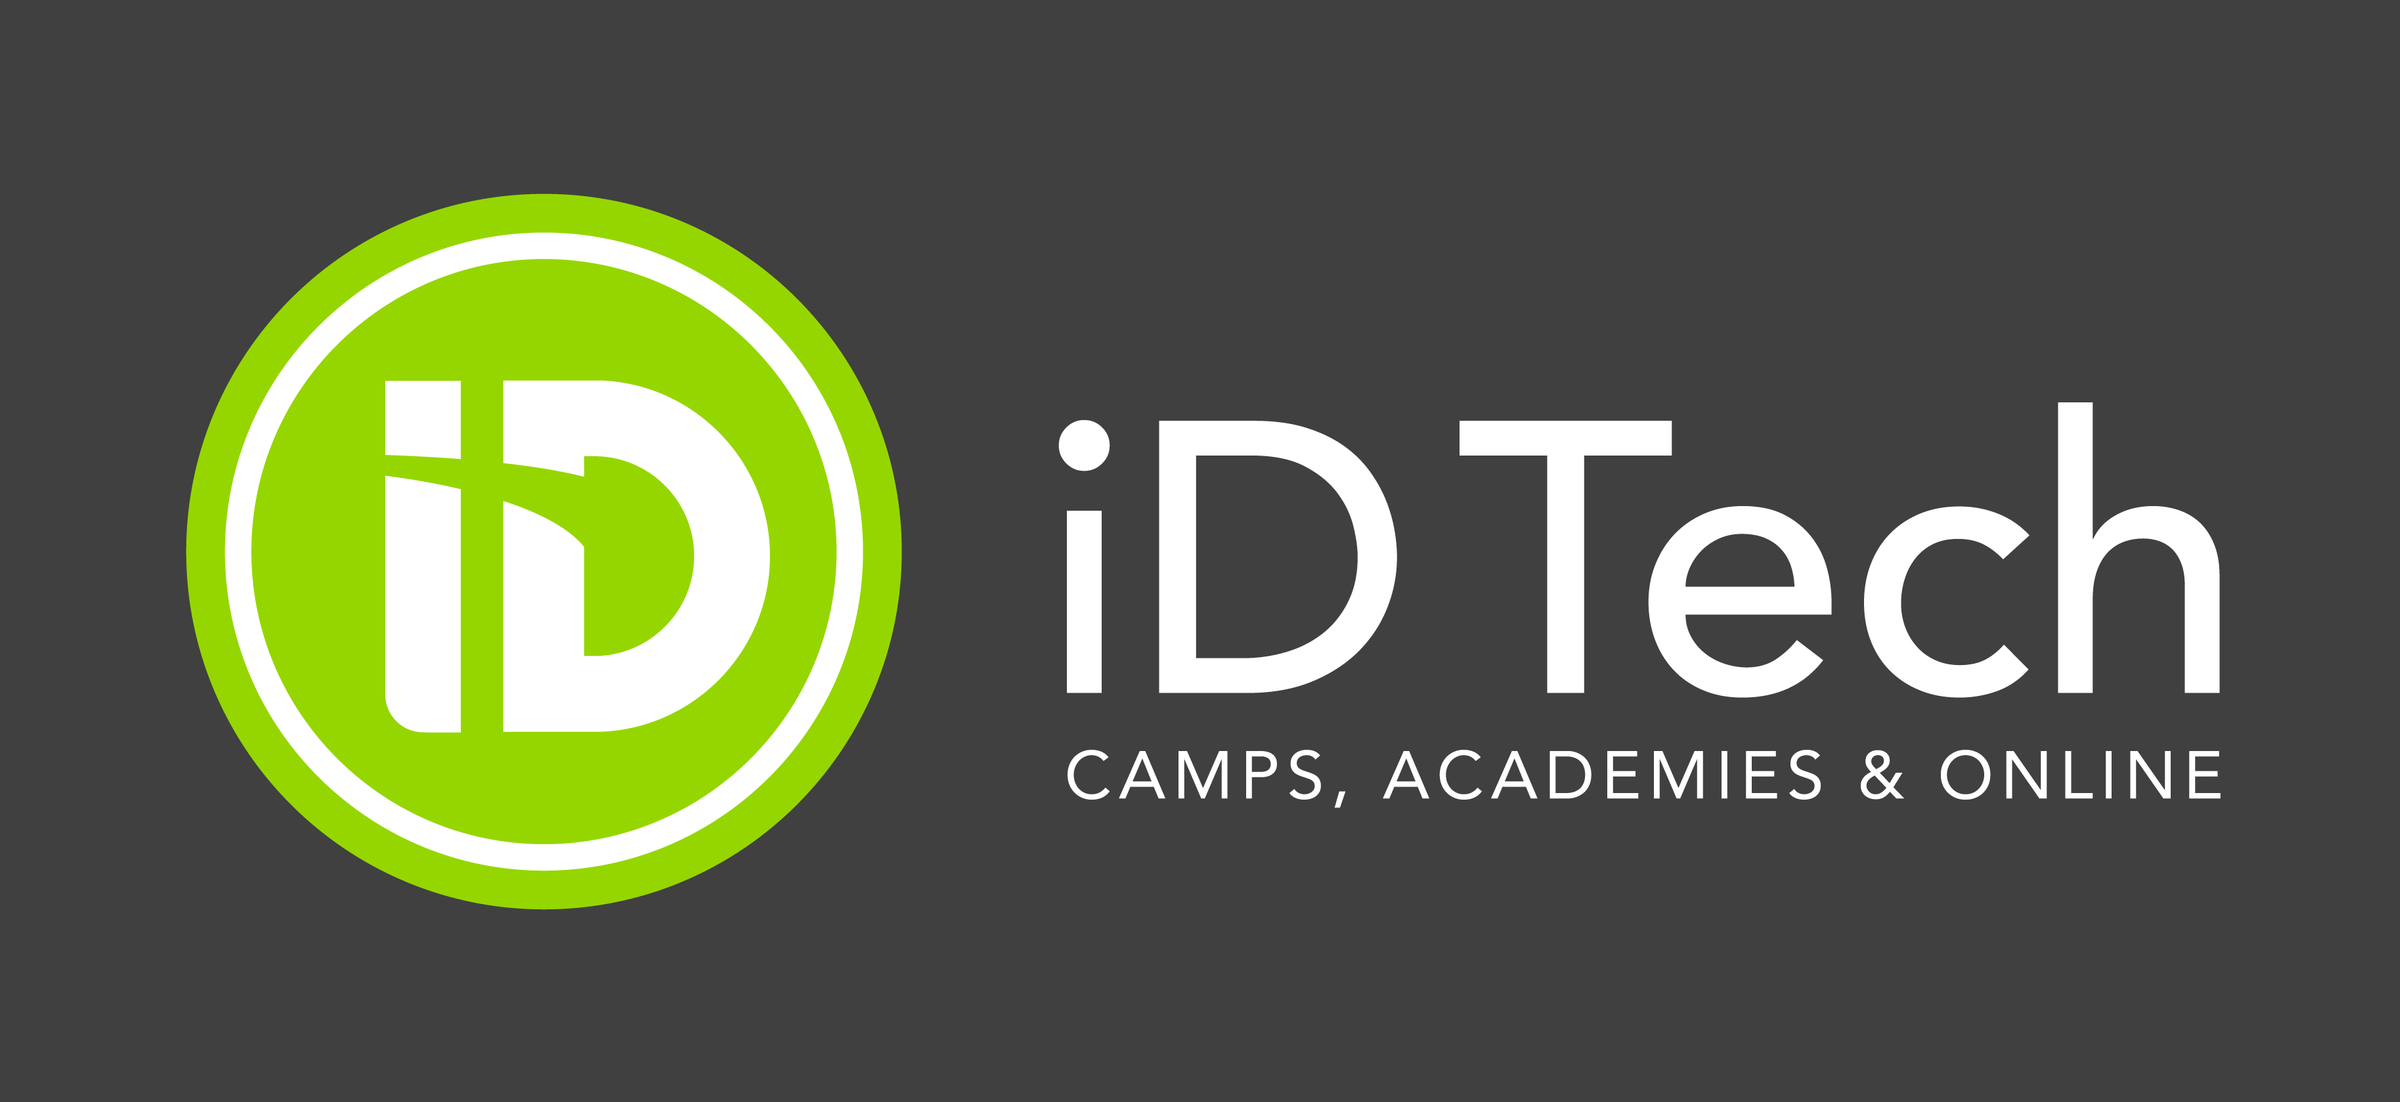 iD Tech Camps: #1 in STEM Education - Held at Judson University